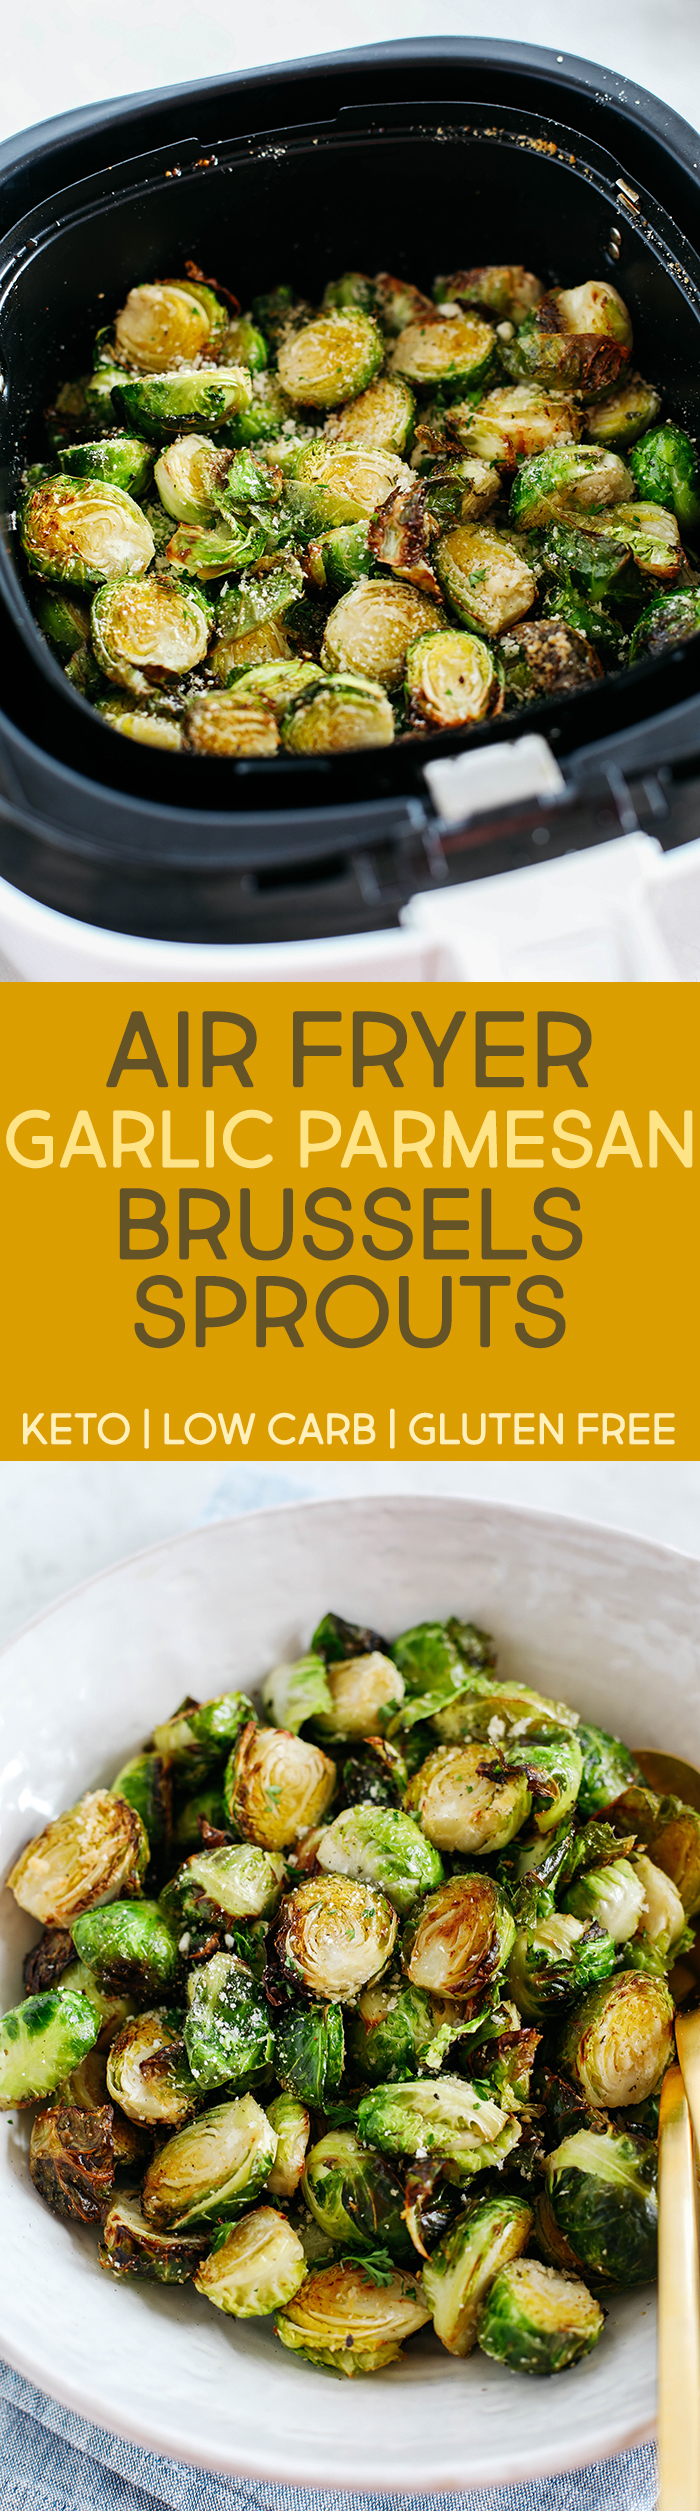 Crispy Garlic Parmesan Brussels Sprouts easily cooked in your air fryer in just 15 minutes for a delicious healthy snack or side dish!